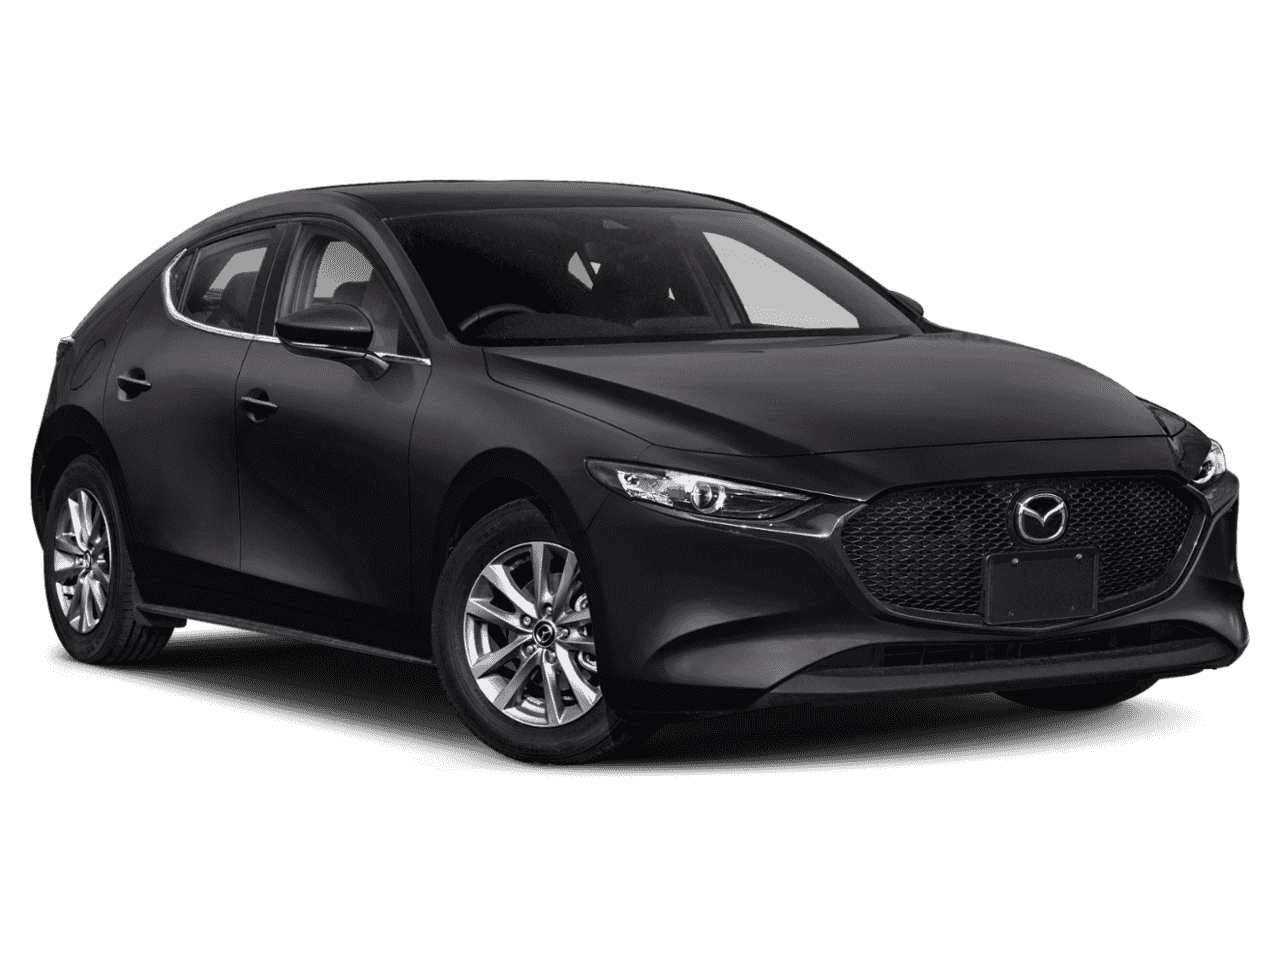 "2020 Mazda<br/><span class=""vdp-trim"">Mazda3 Sedan w/Select Pkg FWD 4dr Car</span>"